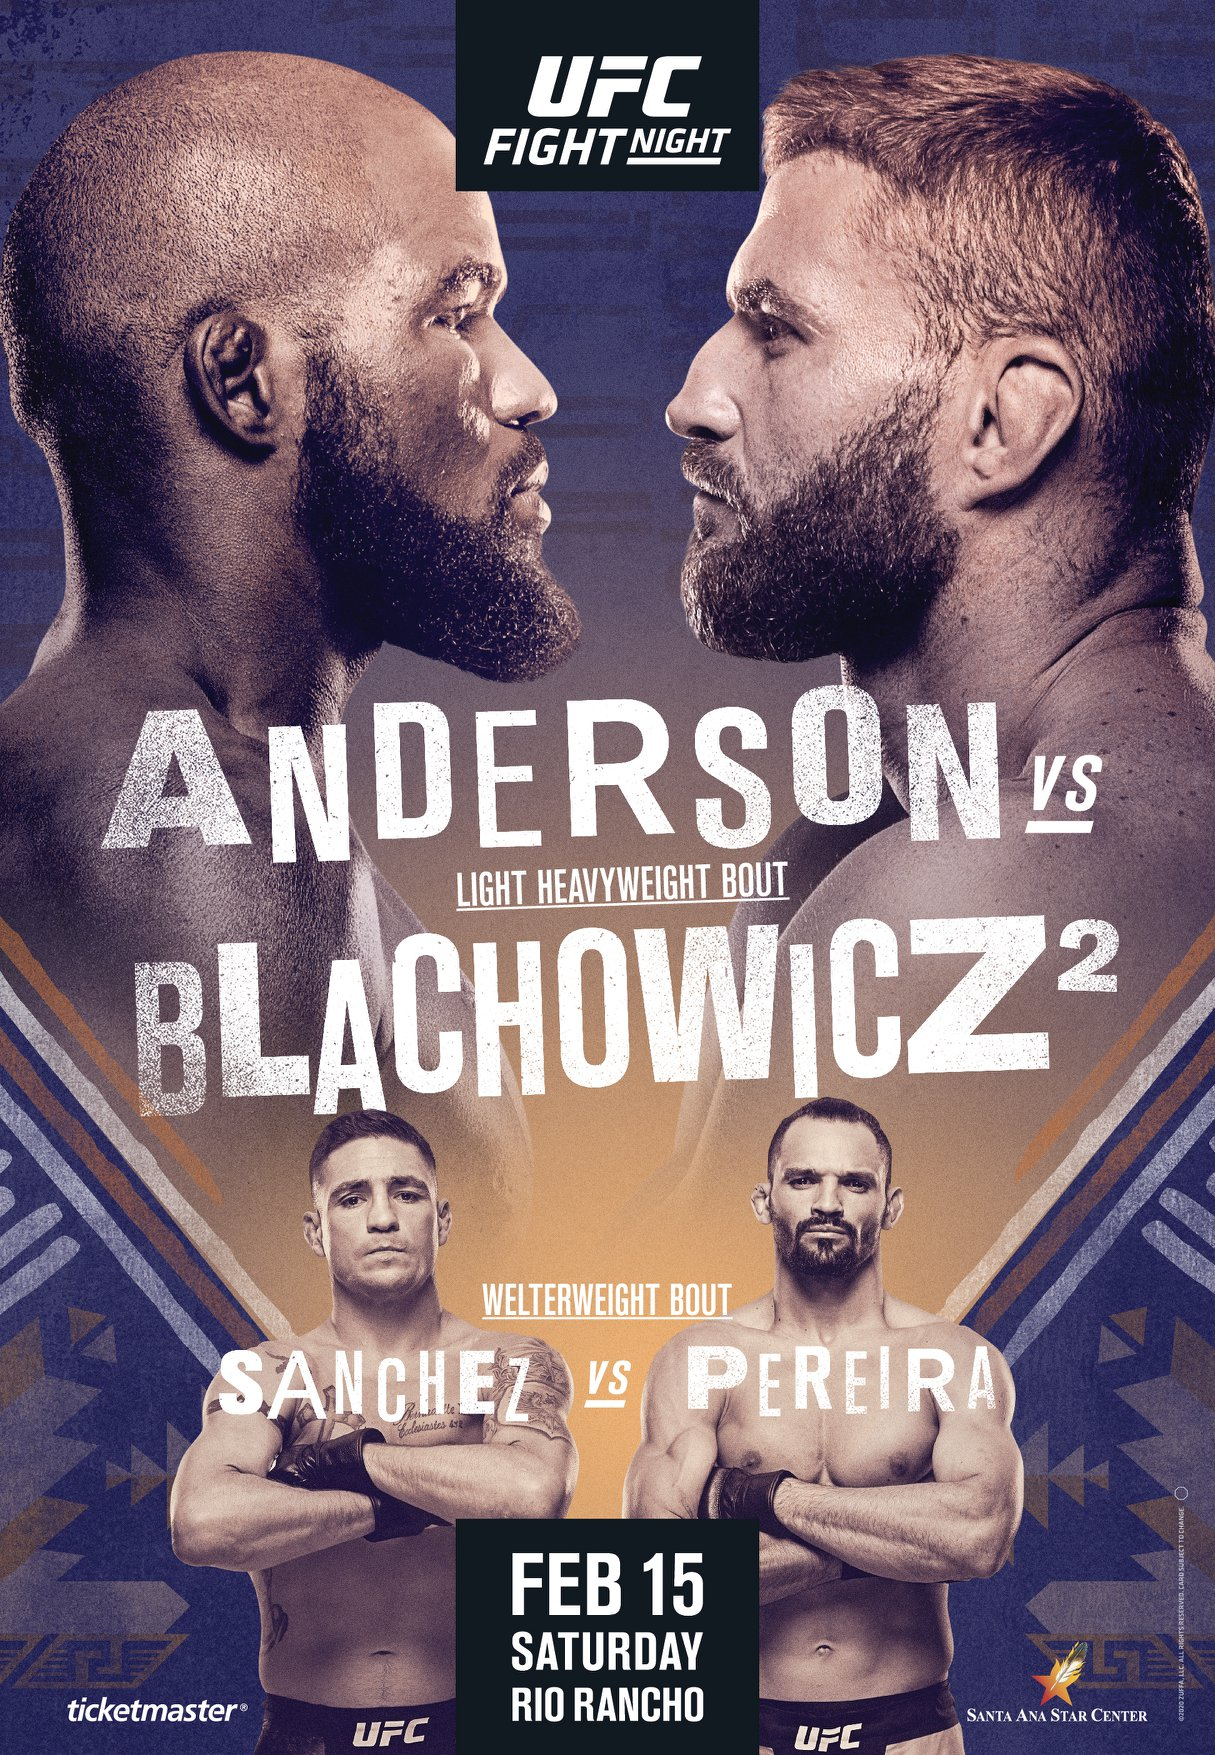 UFC Fight Night 167 results poster